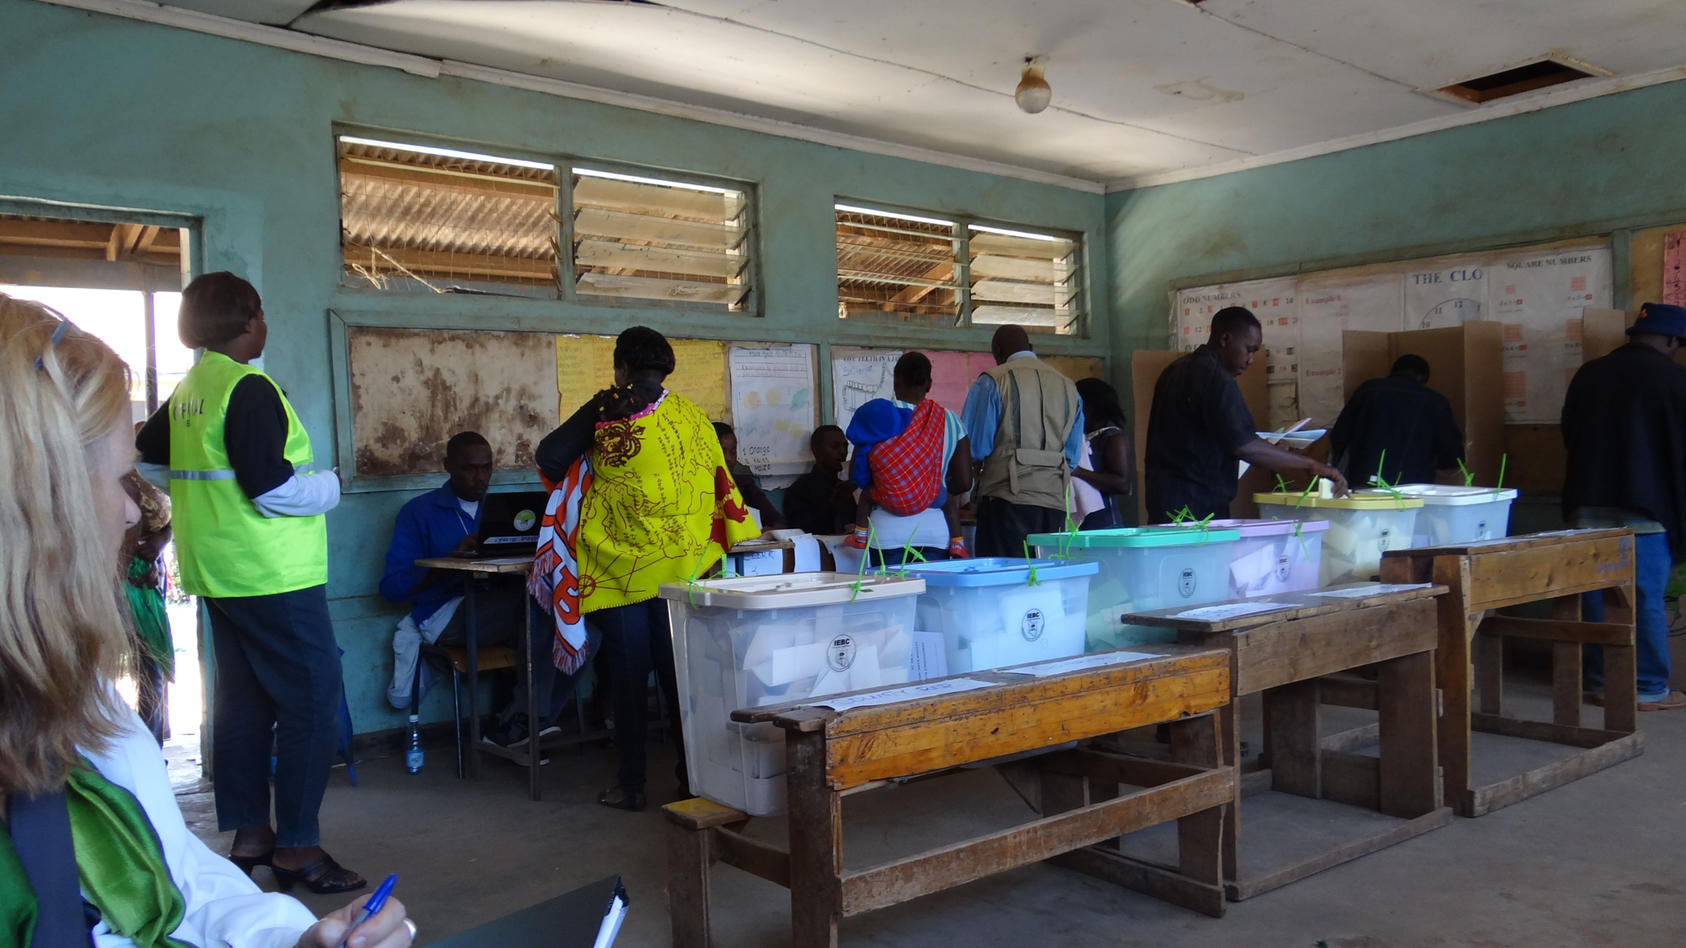 Peaceful Elections in Kenya? Start Preparing Now for 2022 | United States Institute of Peace